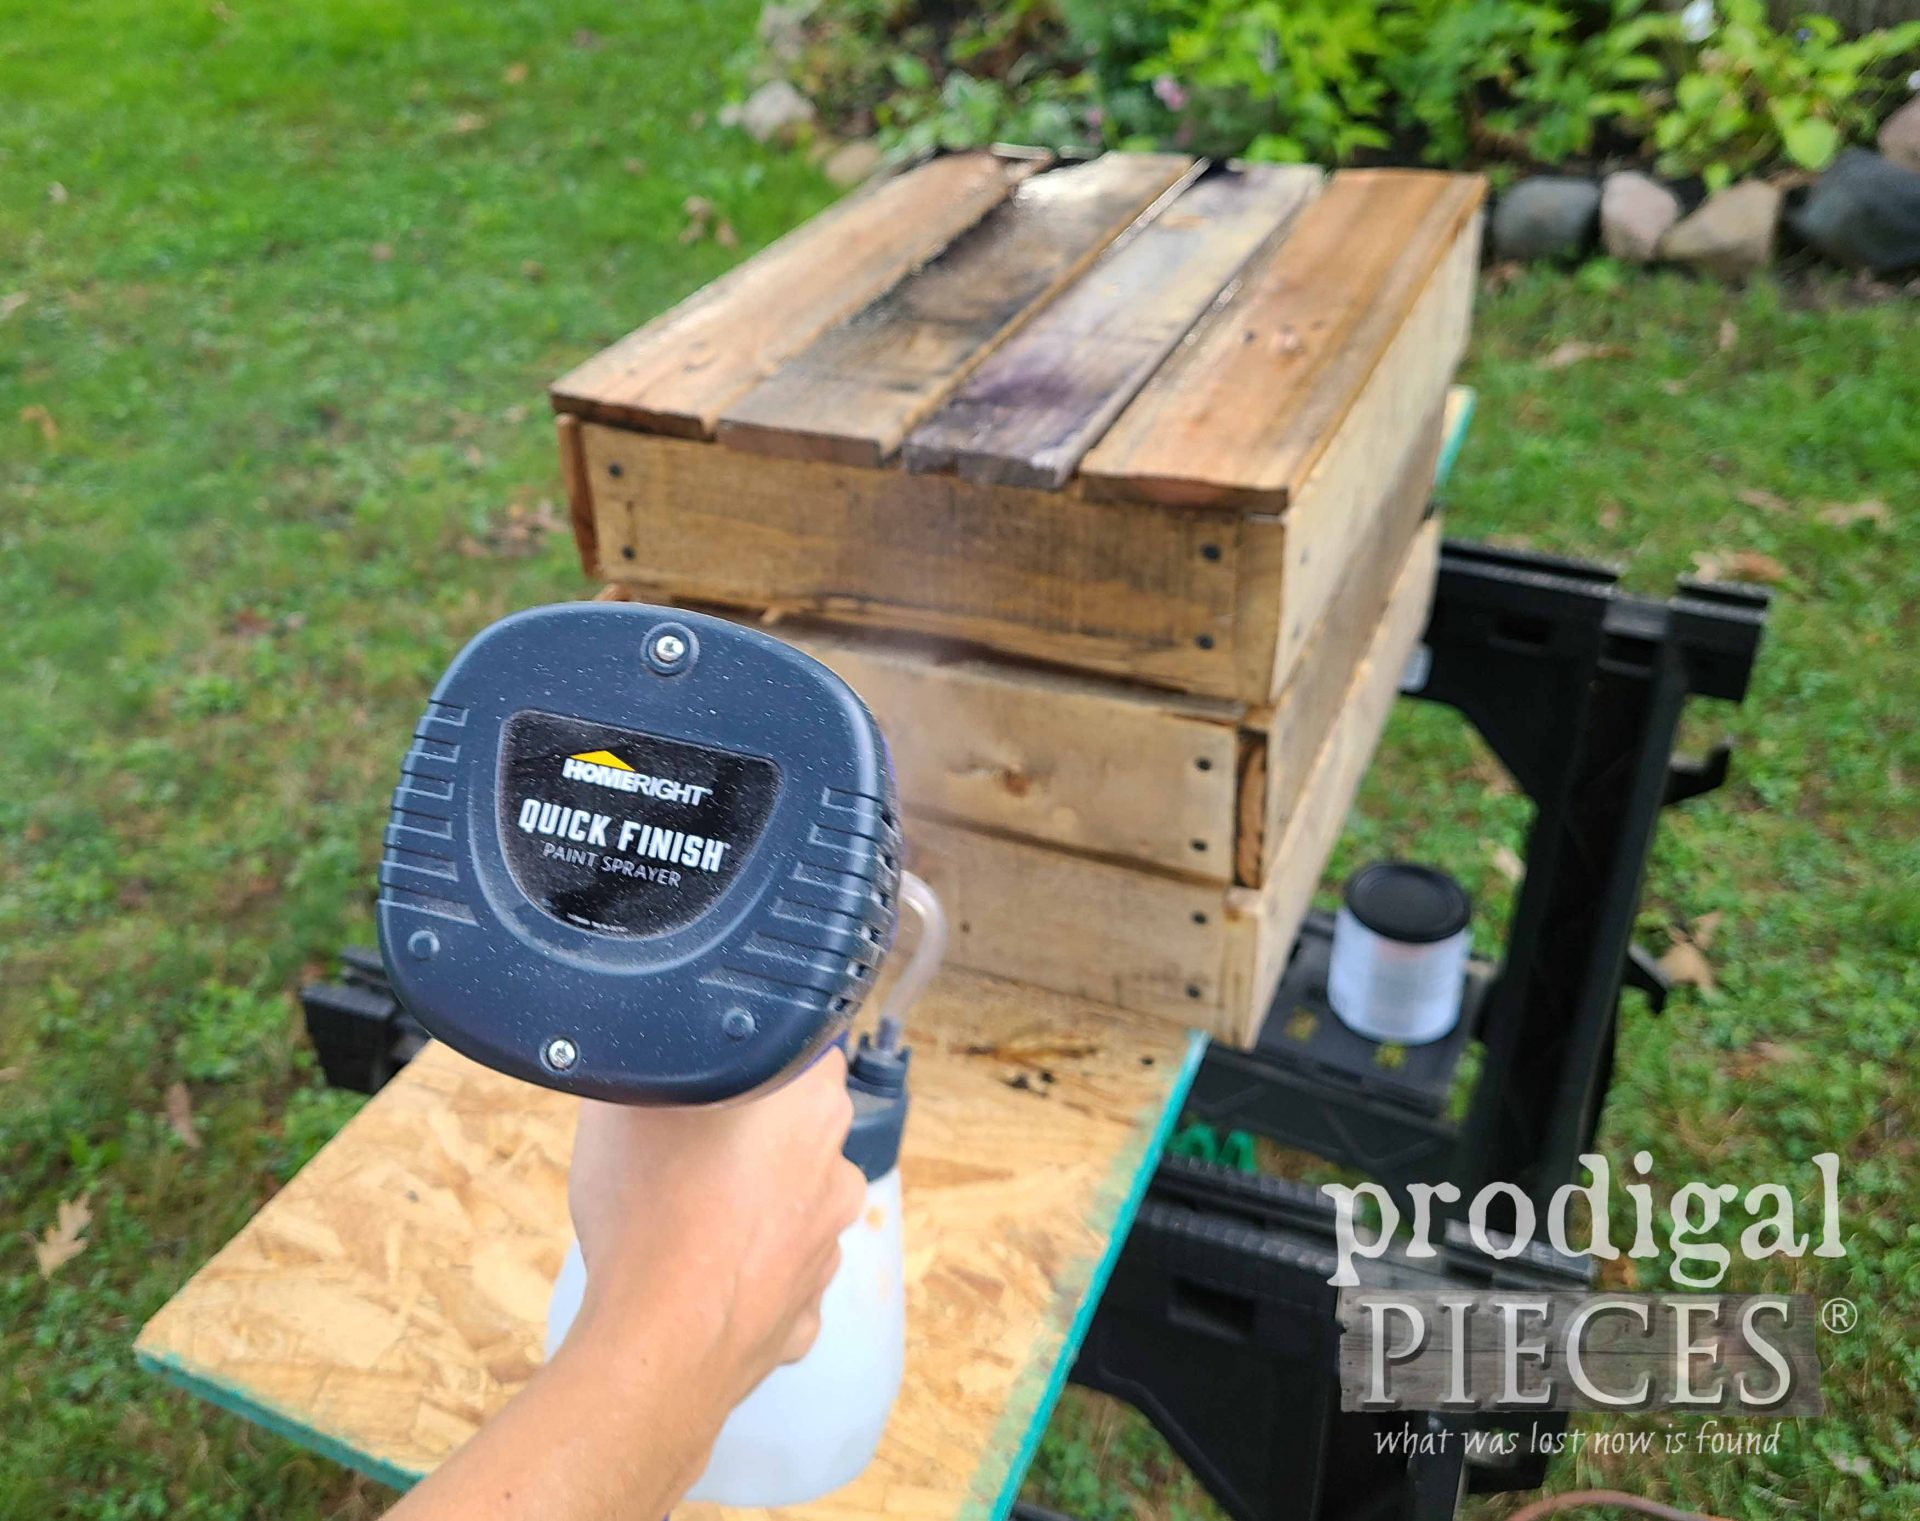 HomeRight Quick Finish Sprayer for DIY Antique Crate from Upcycled Pallets by Larissa of Prodigal Pieces | prodigalpieces.com #prodigalpieces #diy #home #homedecor #tools